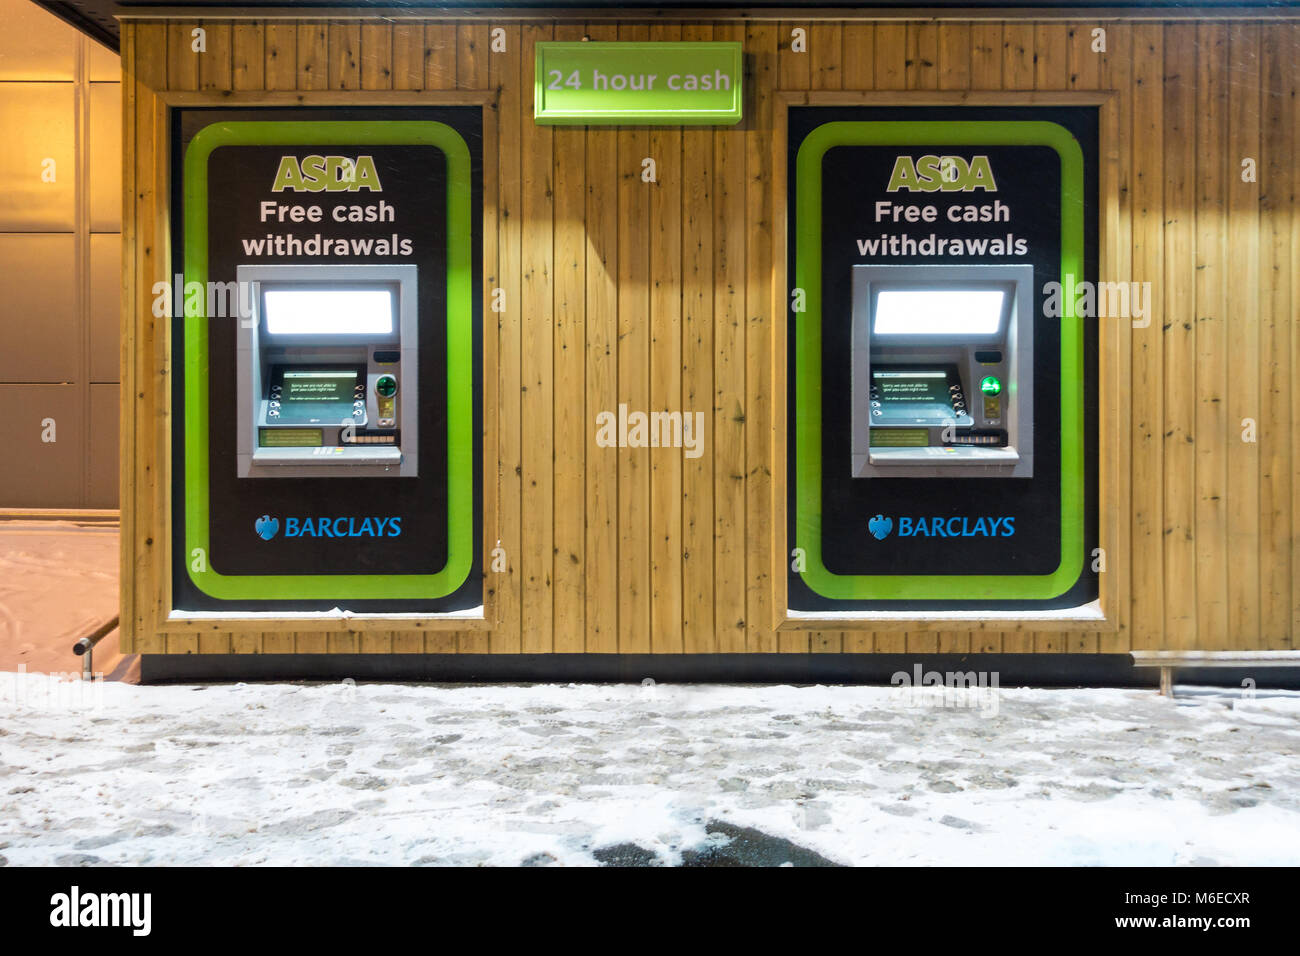 Cash machines in the side of an Asda supermarket, operated by Barclays bank, picture on a snowy night. - Stock Image